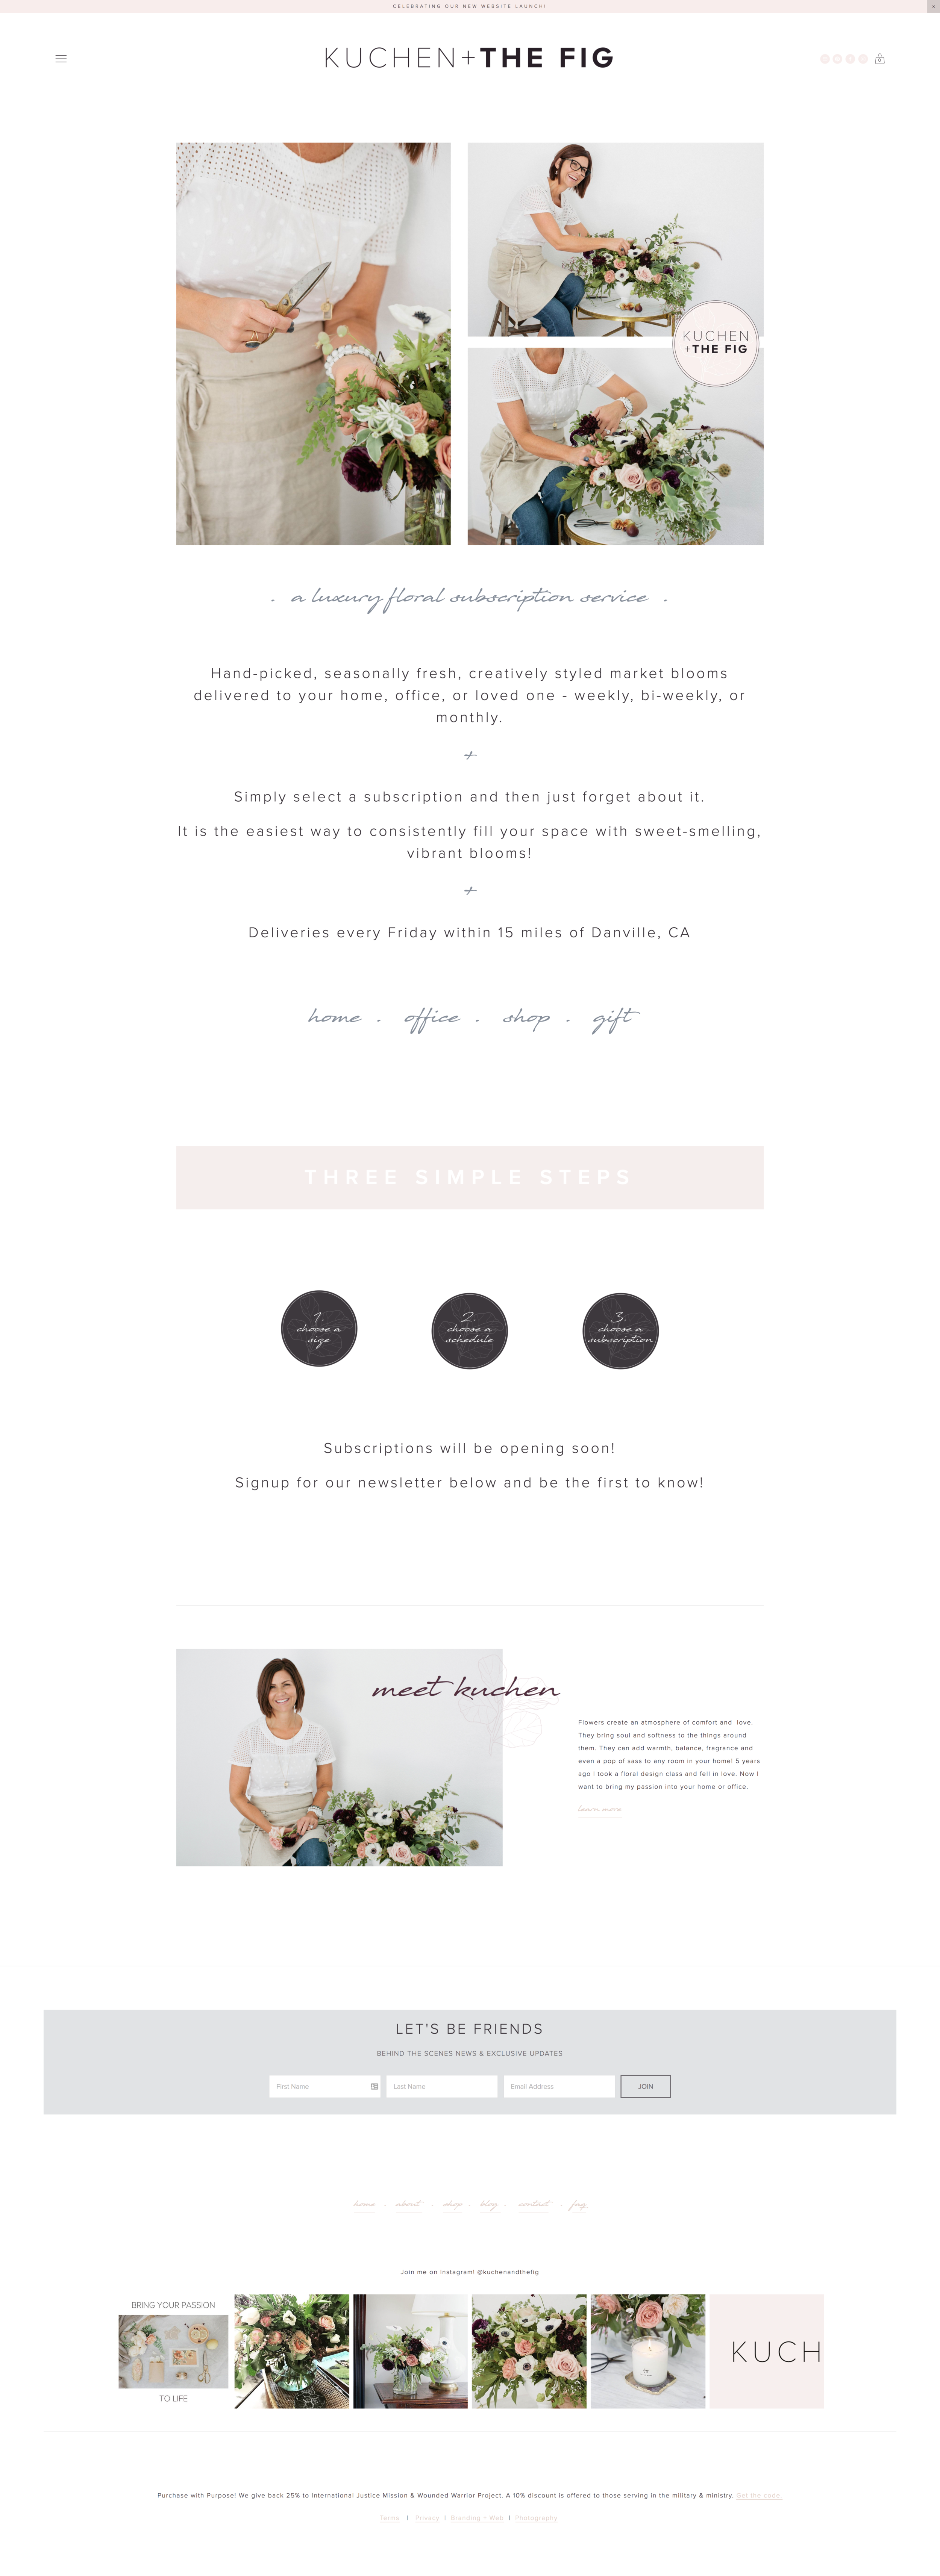 passion project hq kimberly saquing kuchen glazier floral subscription kuchen and the fig logo design brand design website design.png